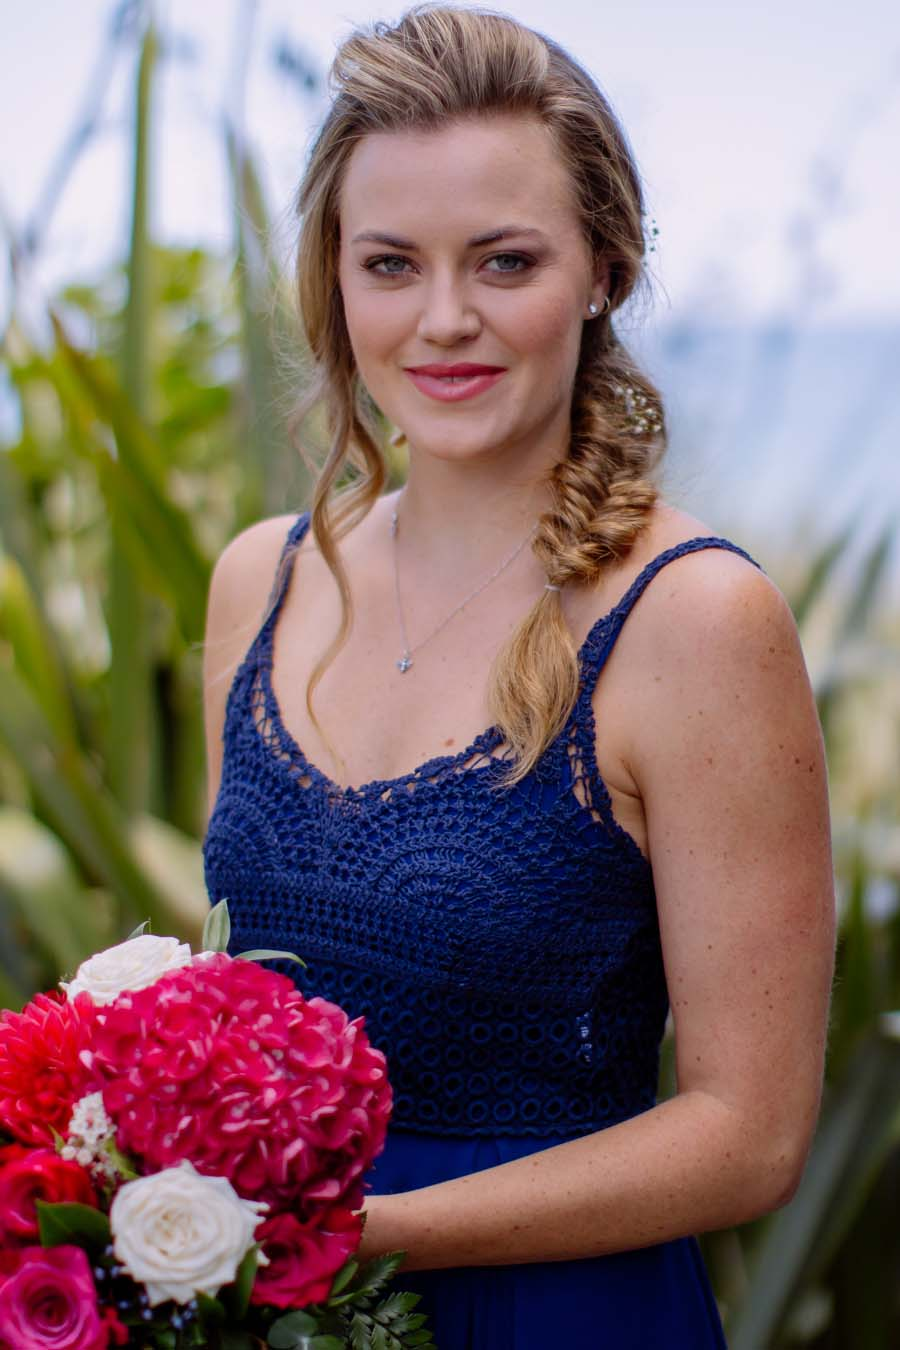 nz_wedding_photographer_castaways_waiuku-854